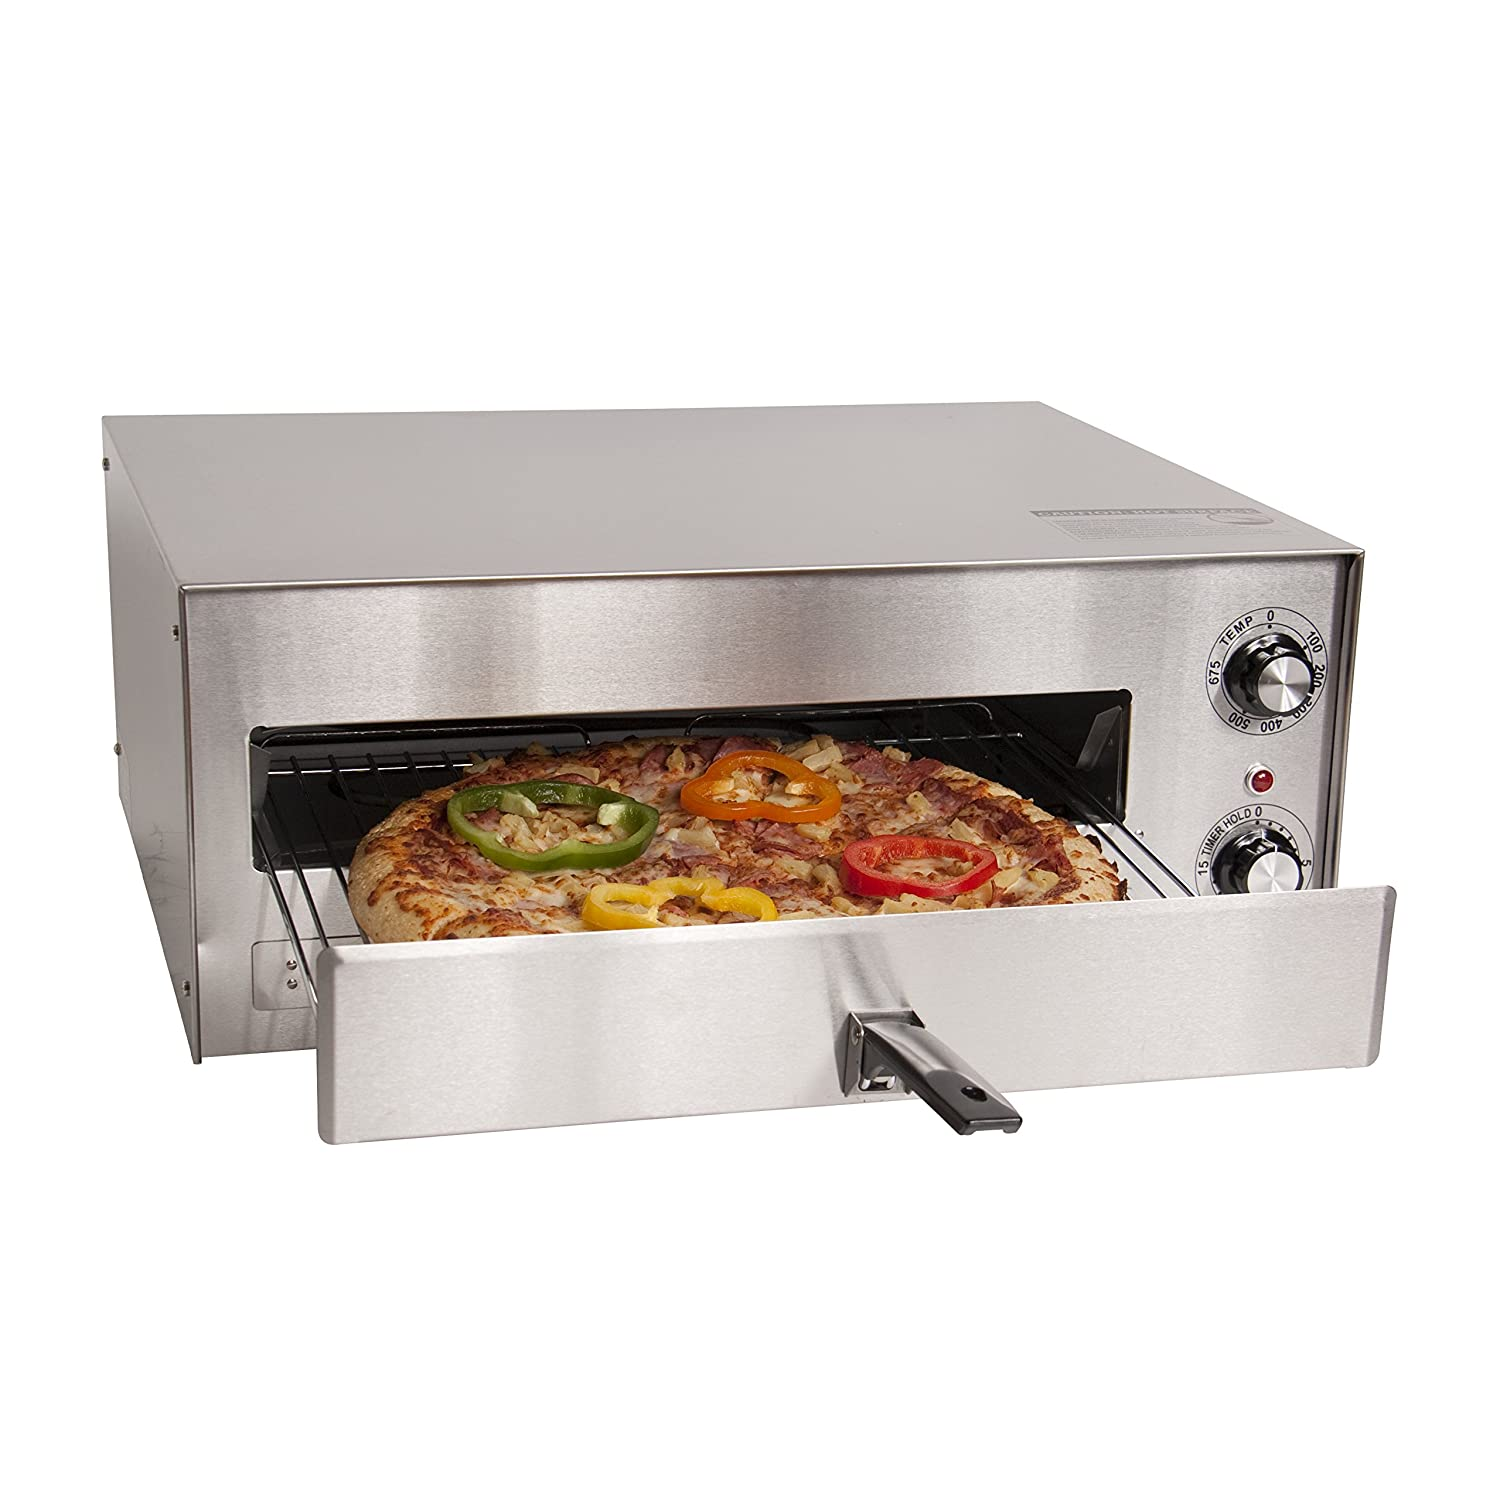 pasta of cooker induction gas countertops best countertop ic pizza elegant recipes oven range philippines w solpoolfo ovens